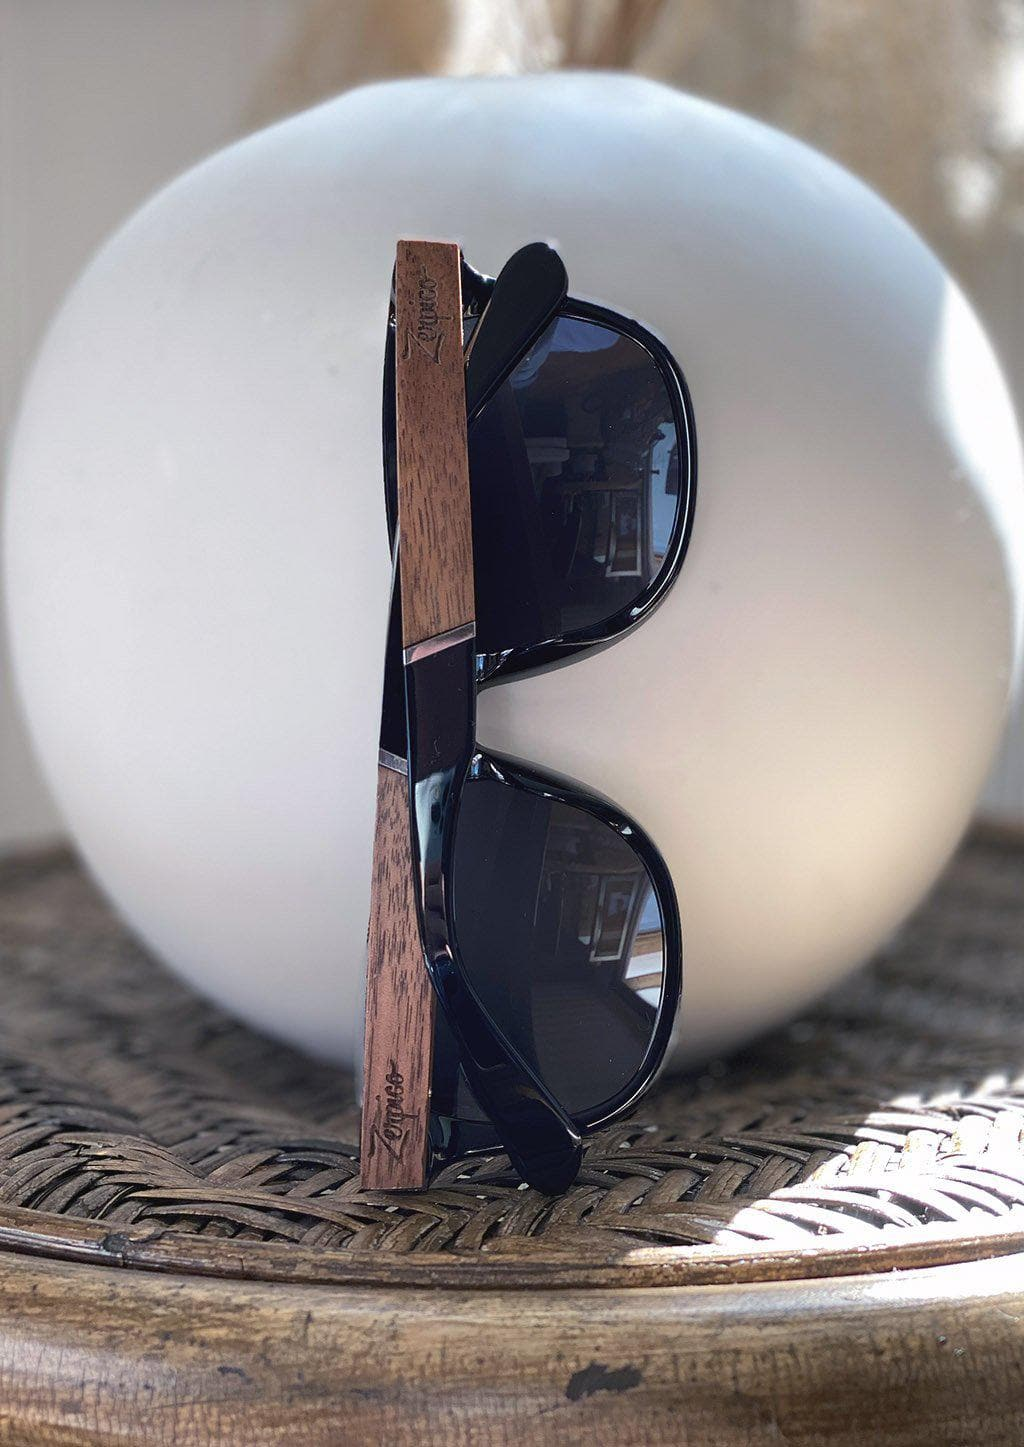 Eyewood Wayfarers - Fusion - Viper - A mix of acetate and wood makes theses sunglasses unique. Works fine with all styles.